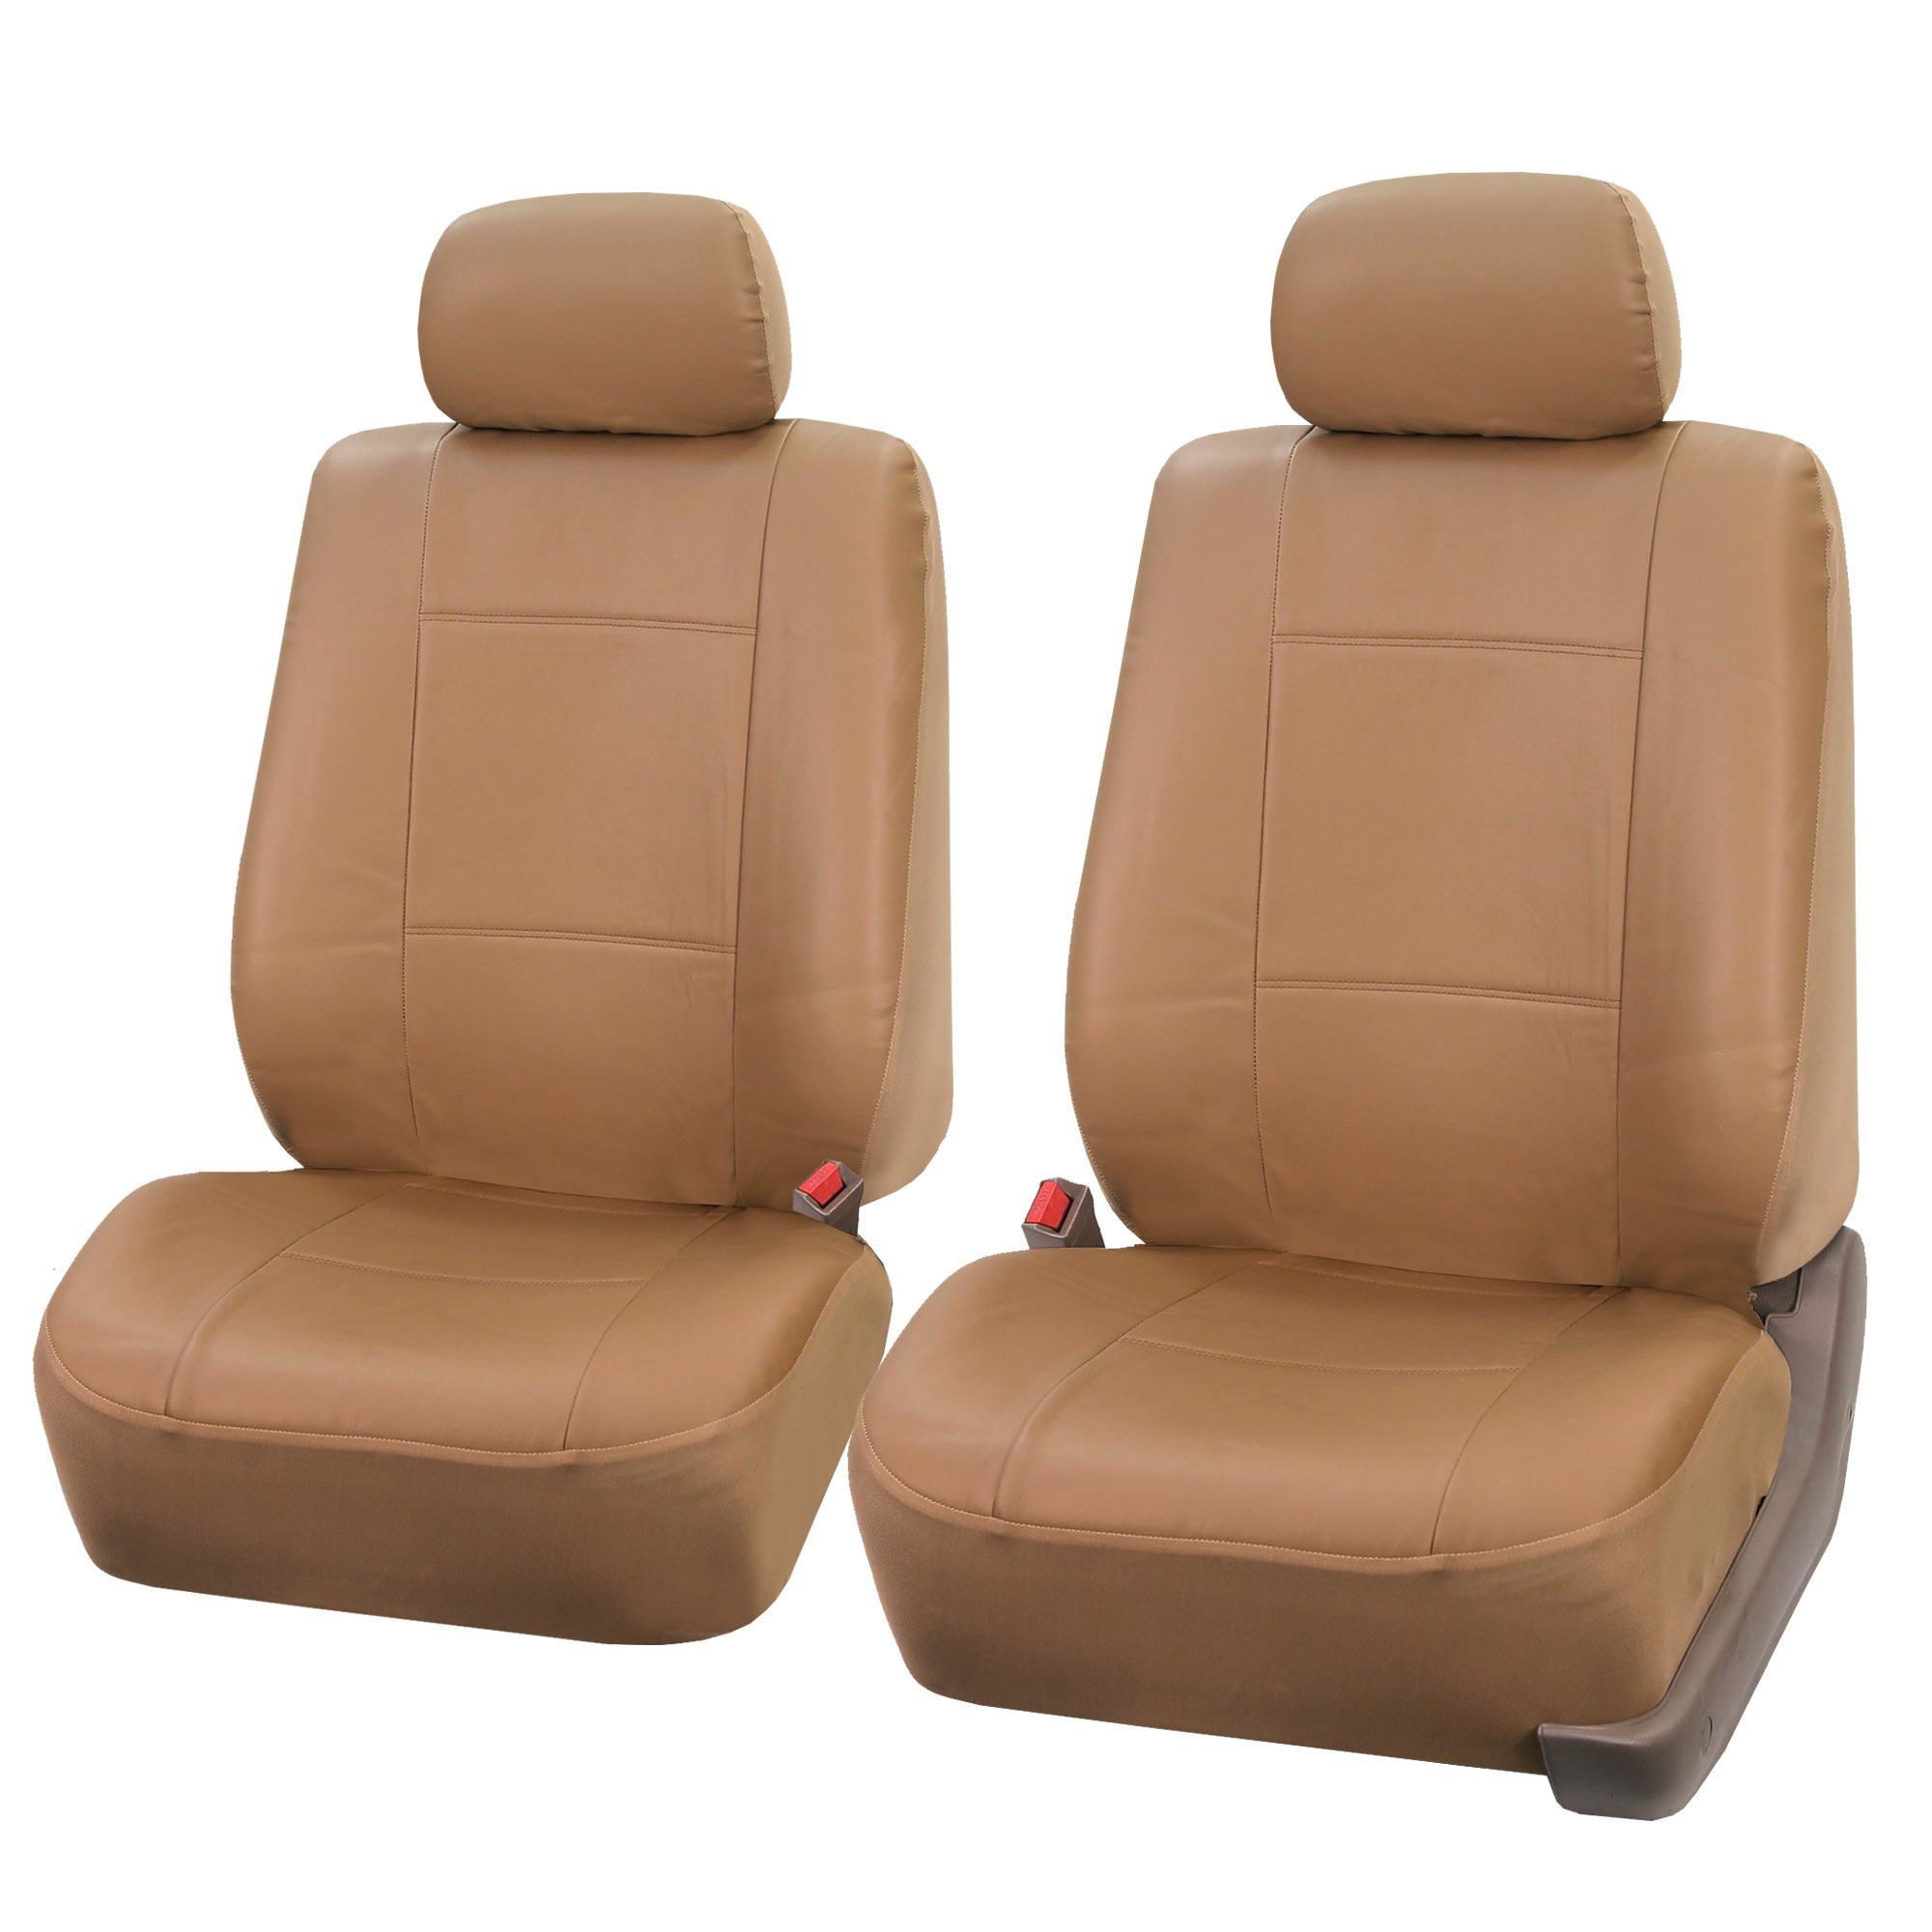 Ebay Uk Leather Car Seat Covers